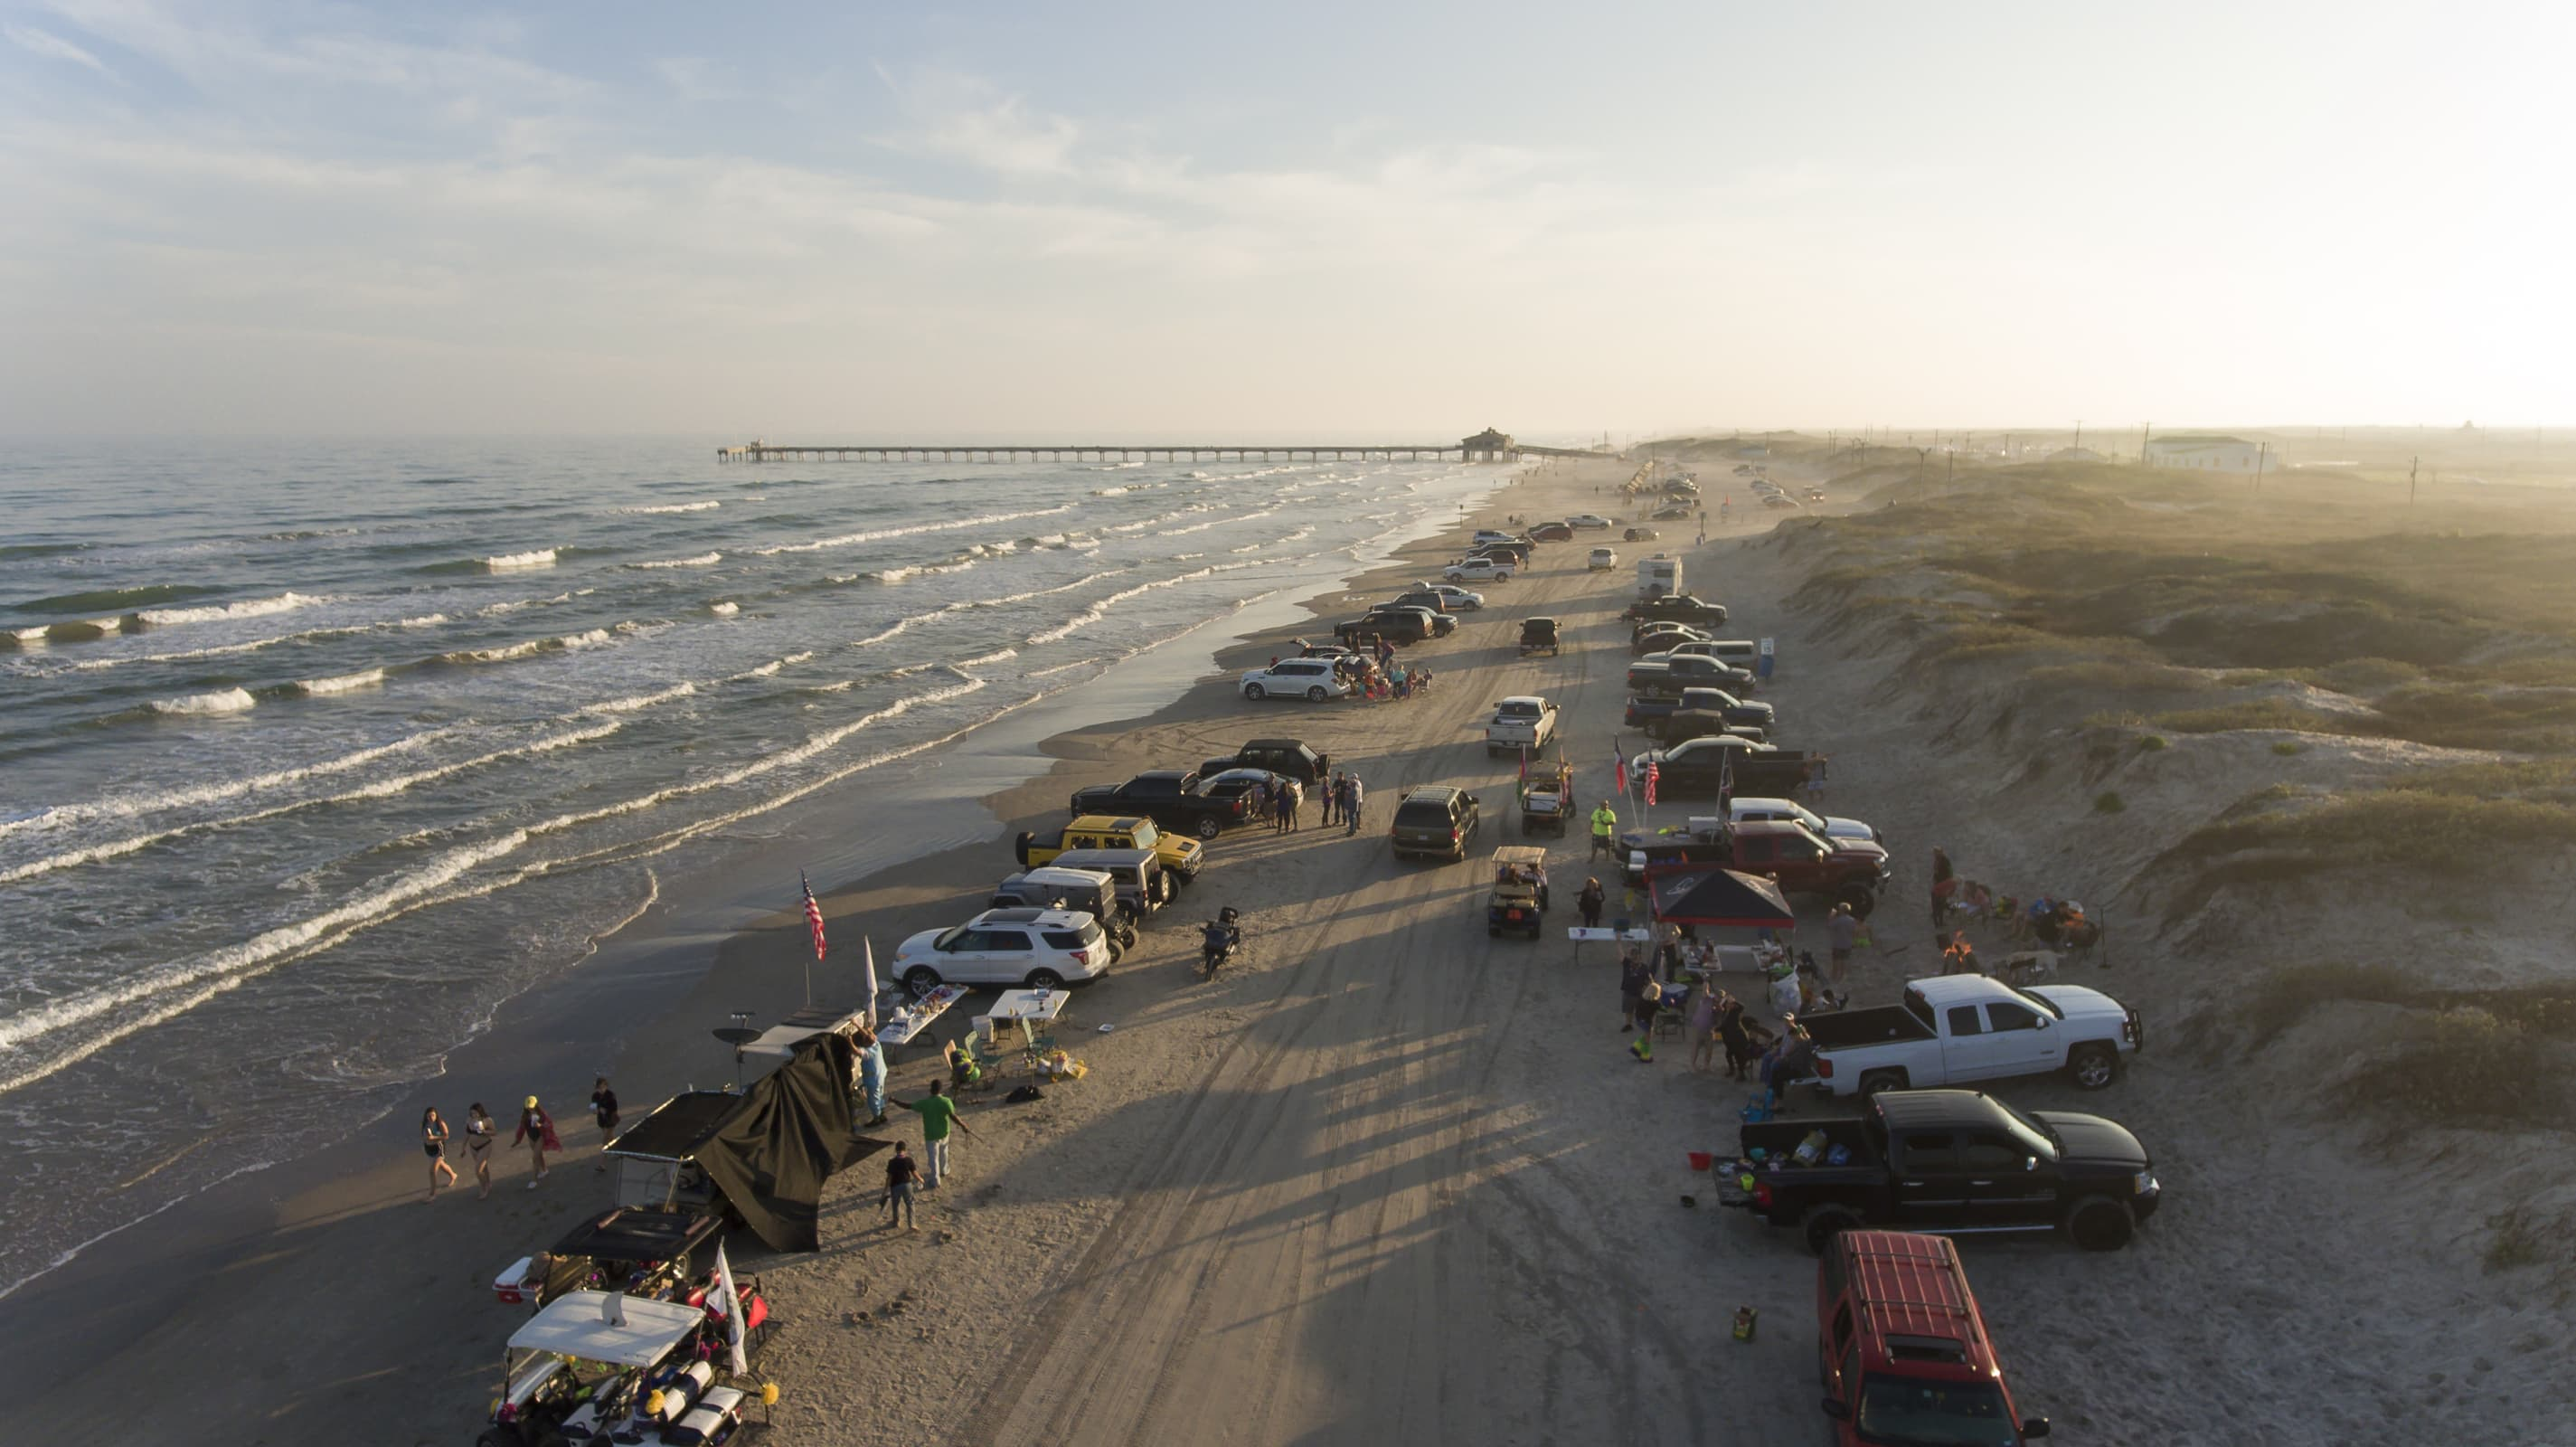 An aerial photo of Whitecap Beach at sunset